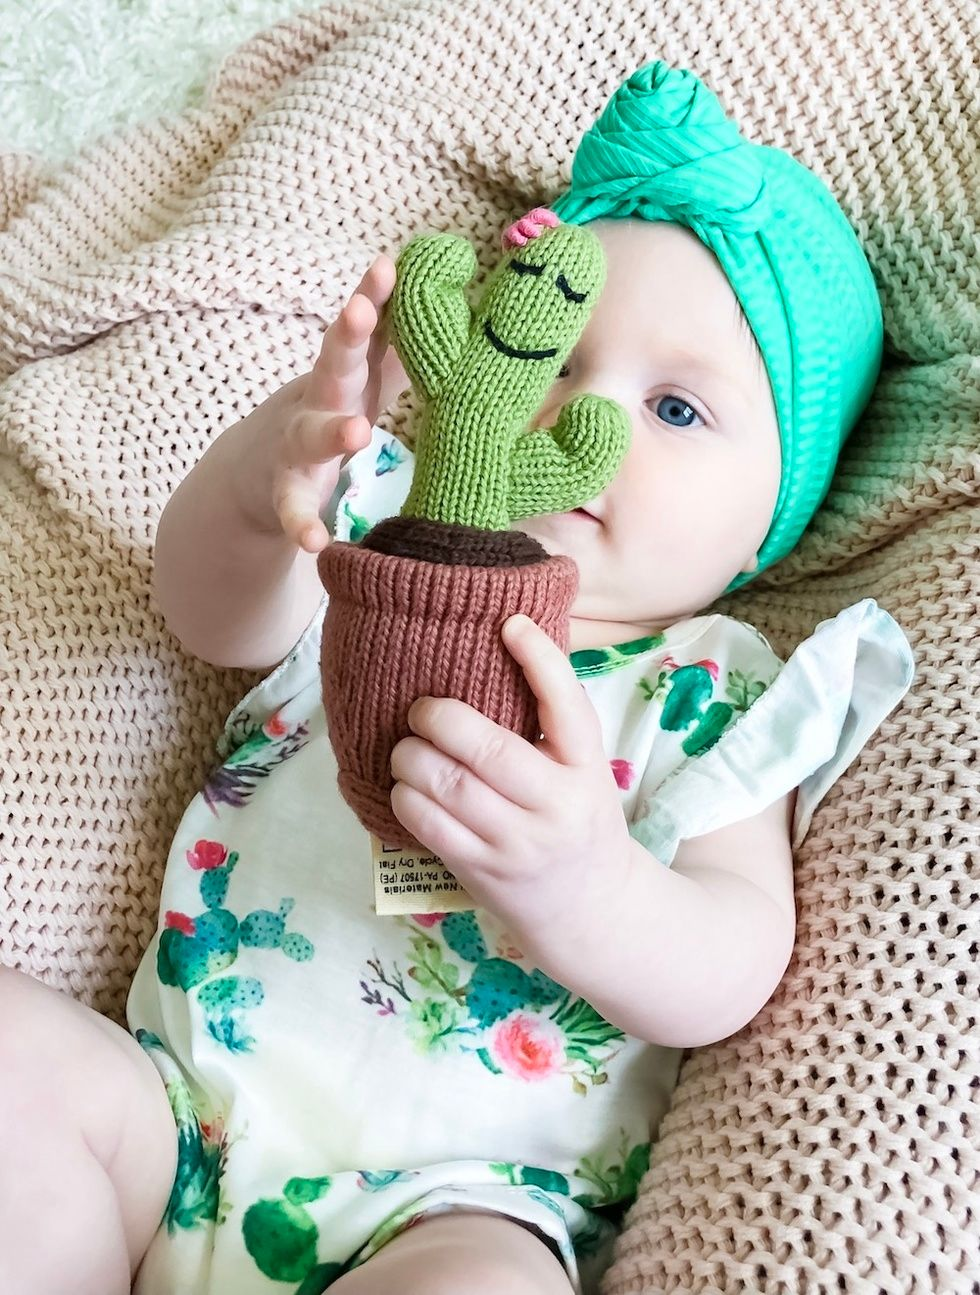 330ec855c8b80 Looking for organic baby clothes? Here are the brands we adore ...